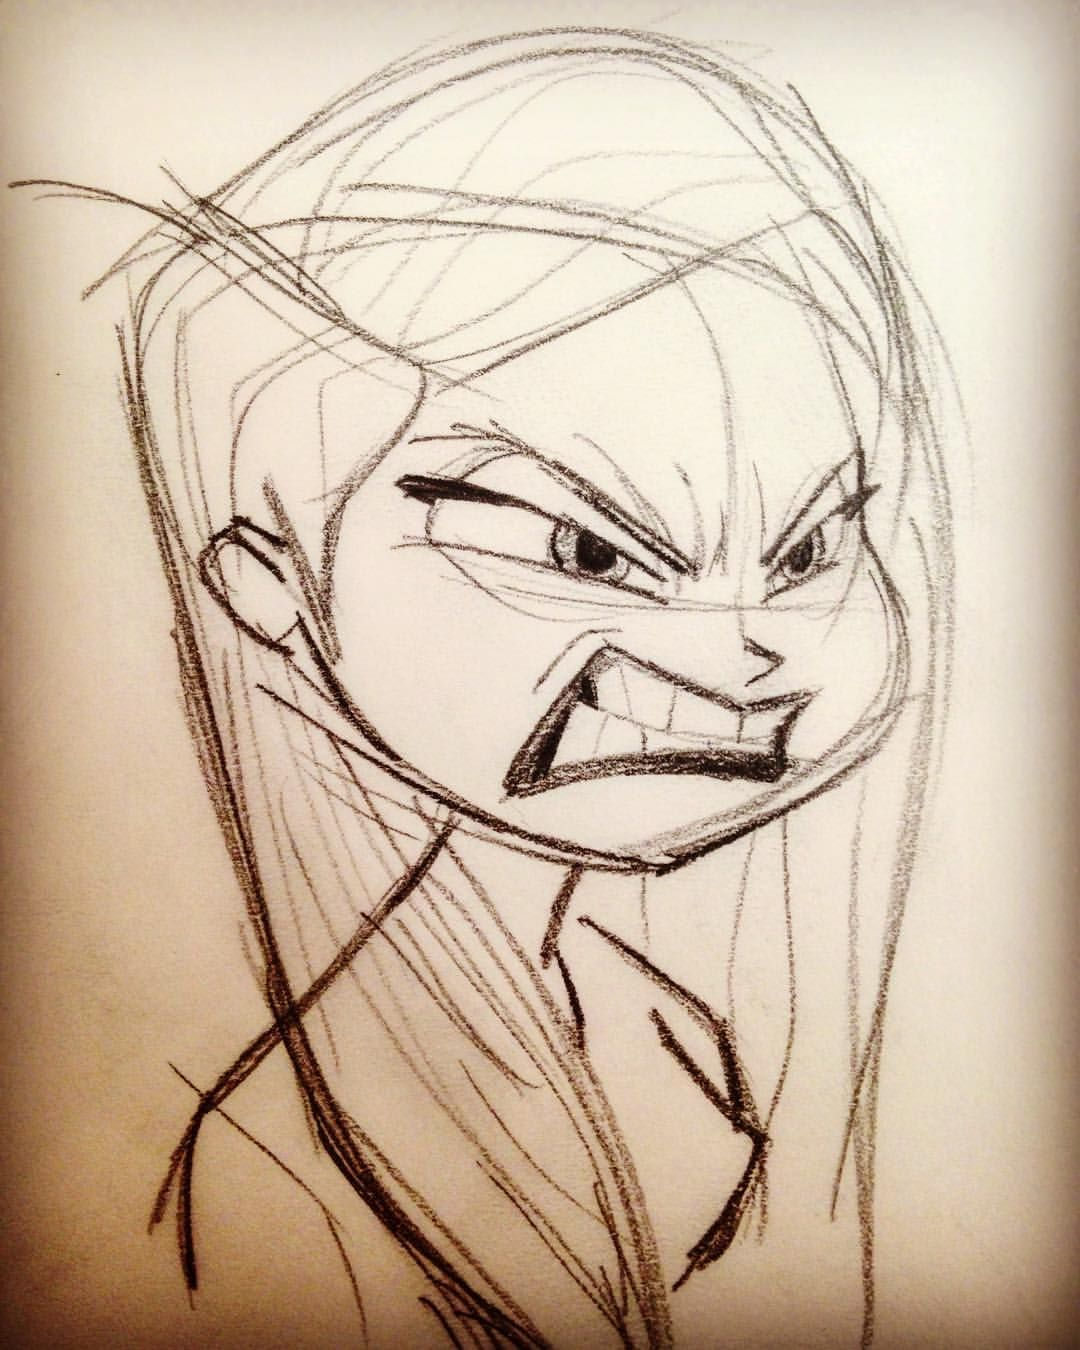 Angry girl doodle drawings drawing sketches pencil drawings drawing art doodle art